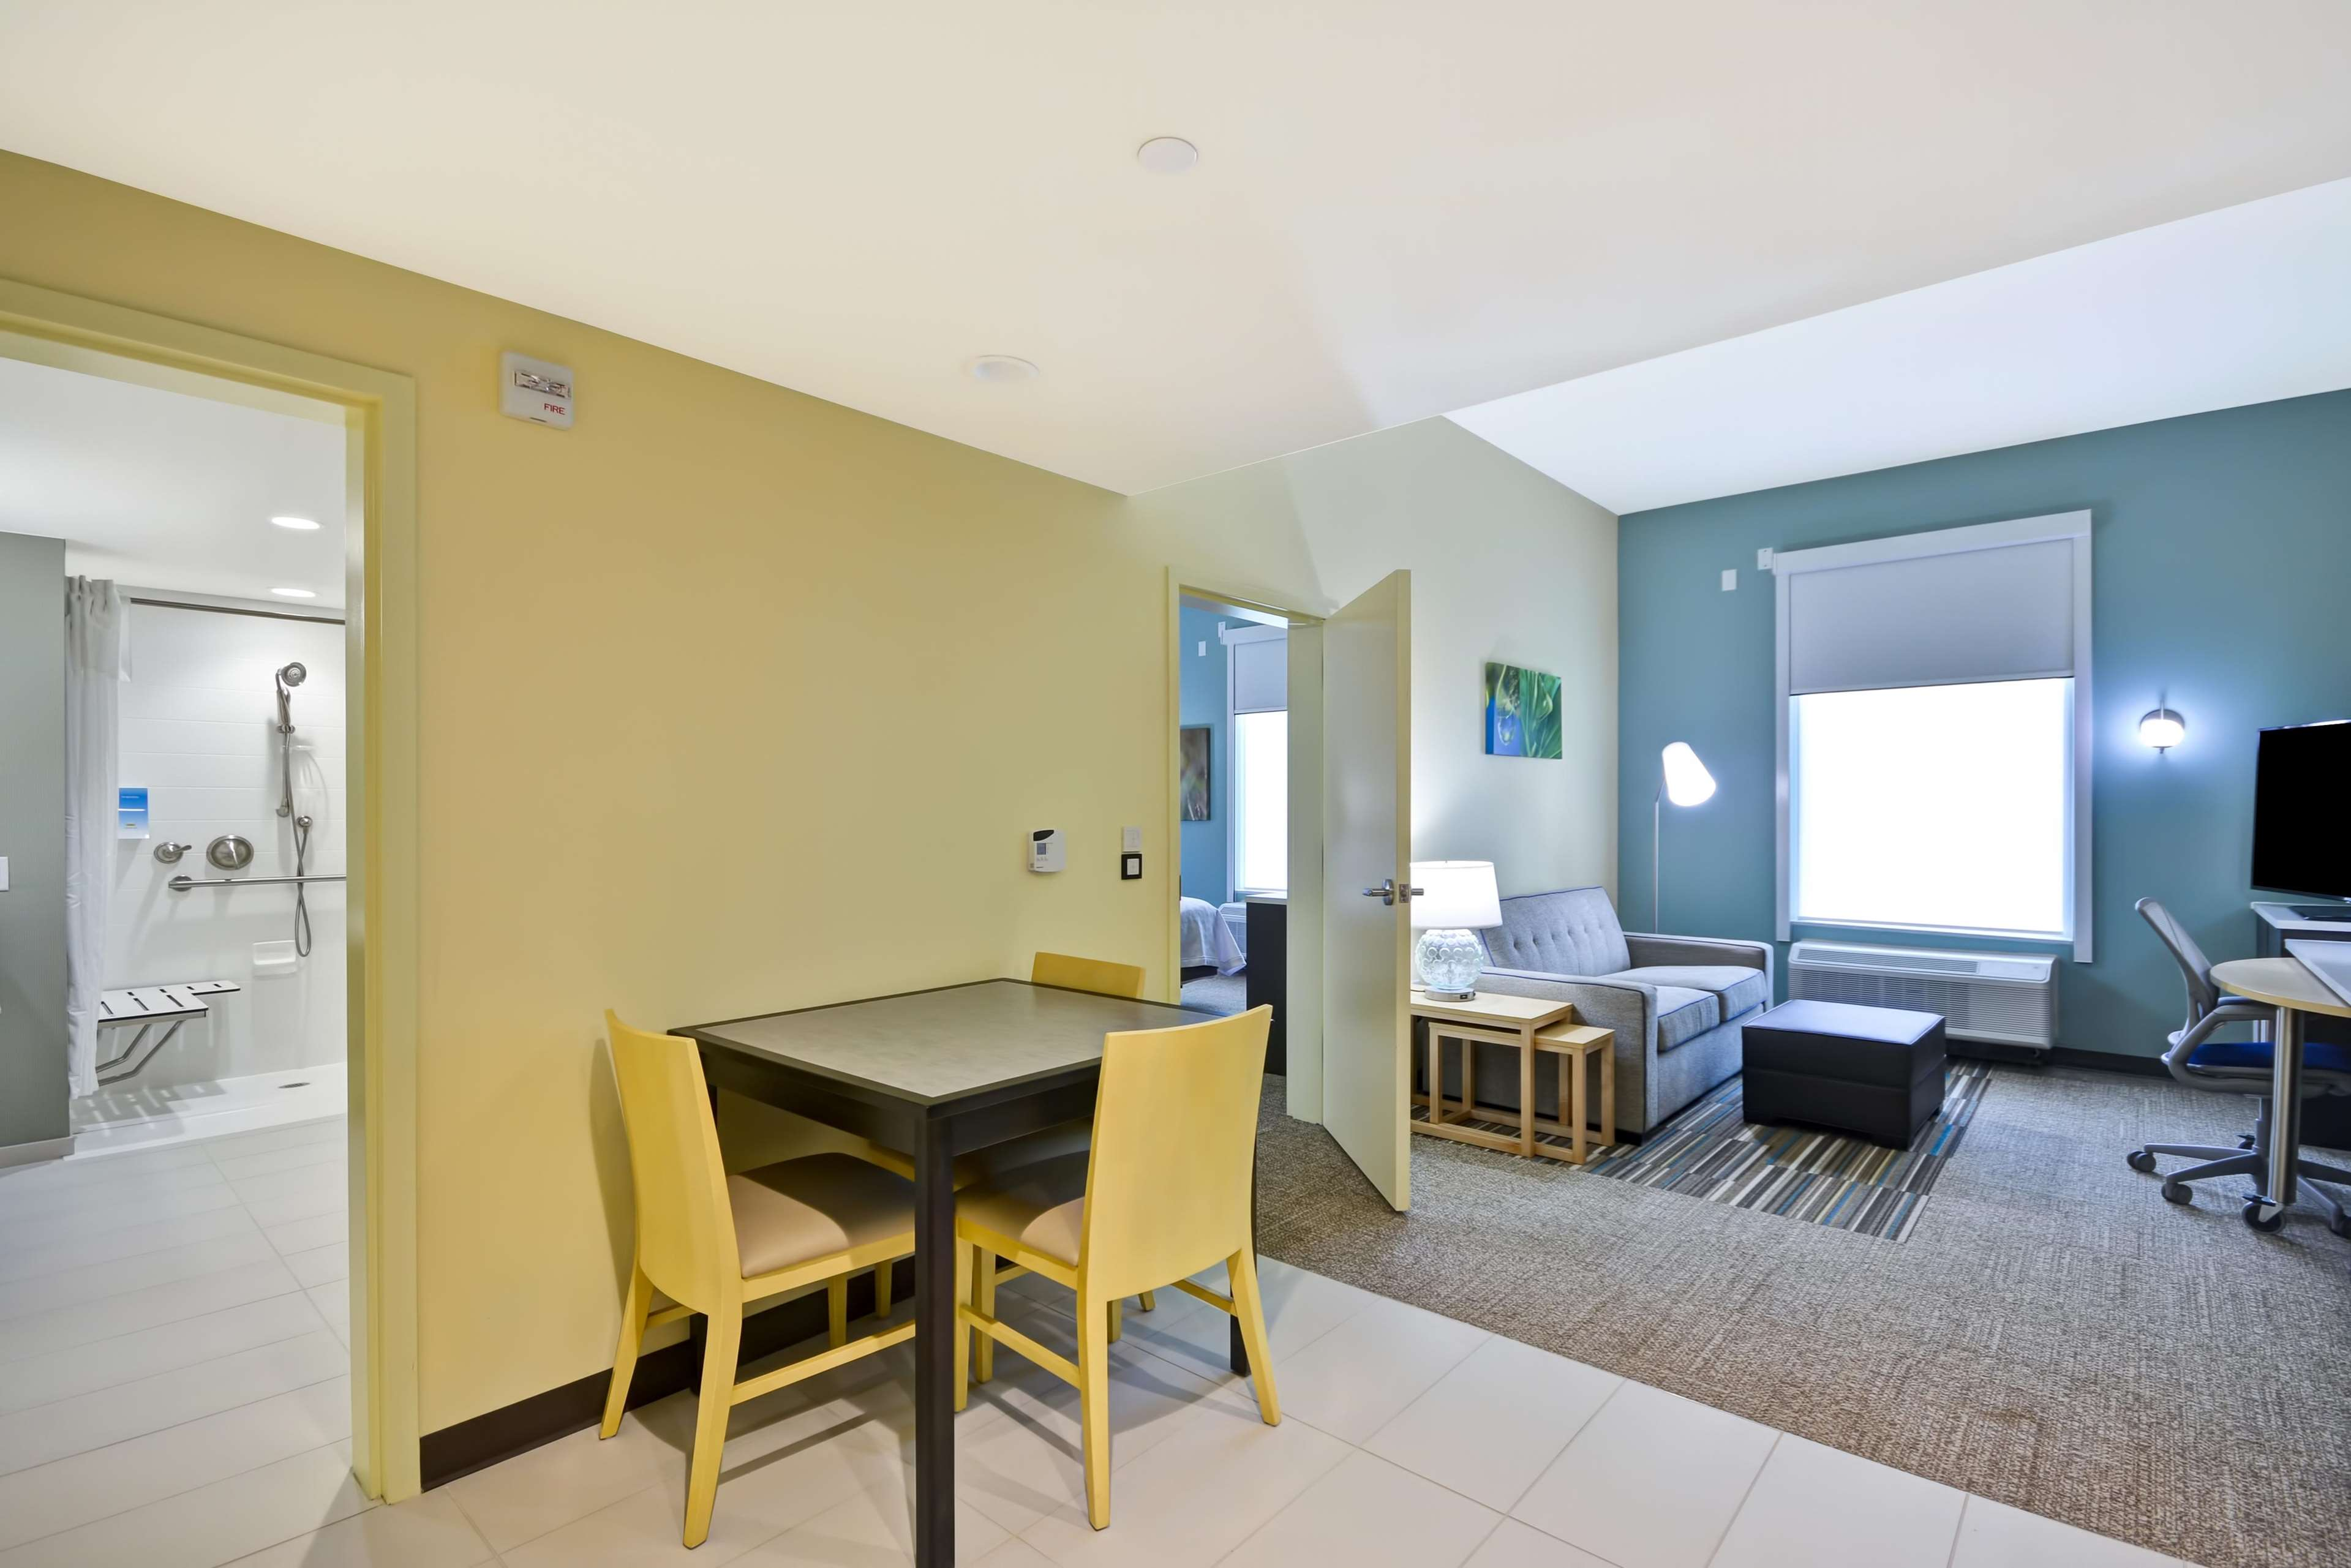 Home2 Suites By Hilton Maumee Toledo image 3